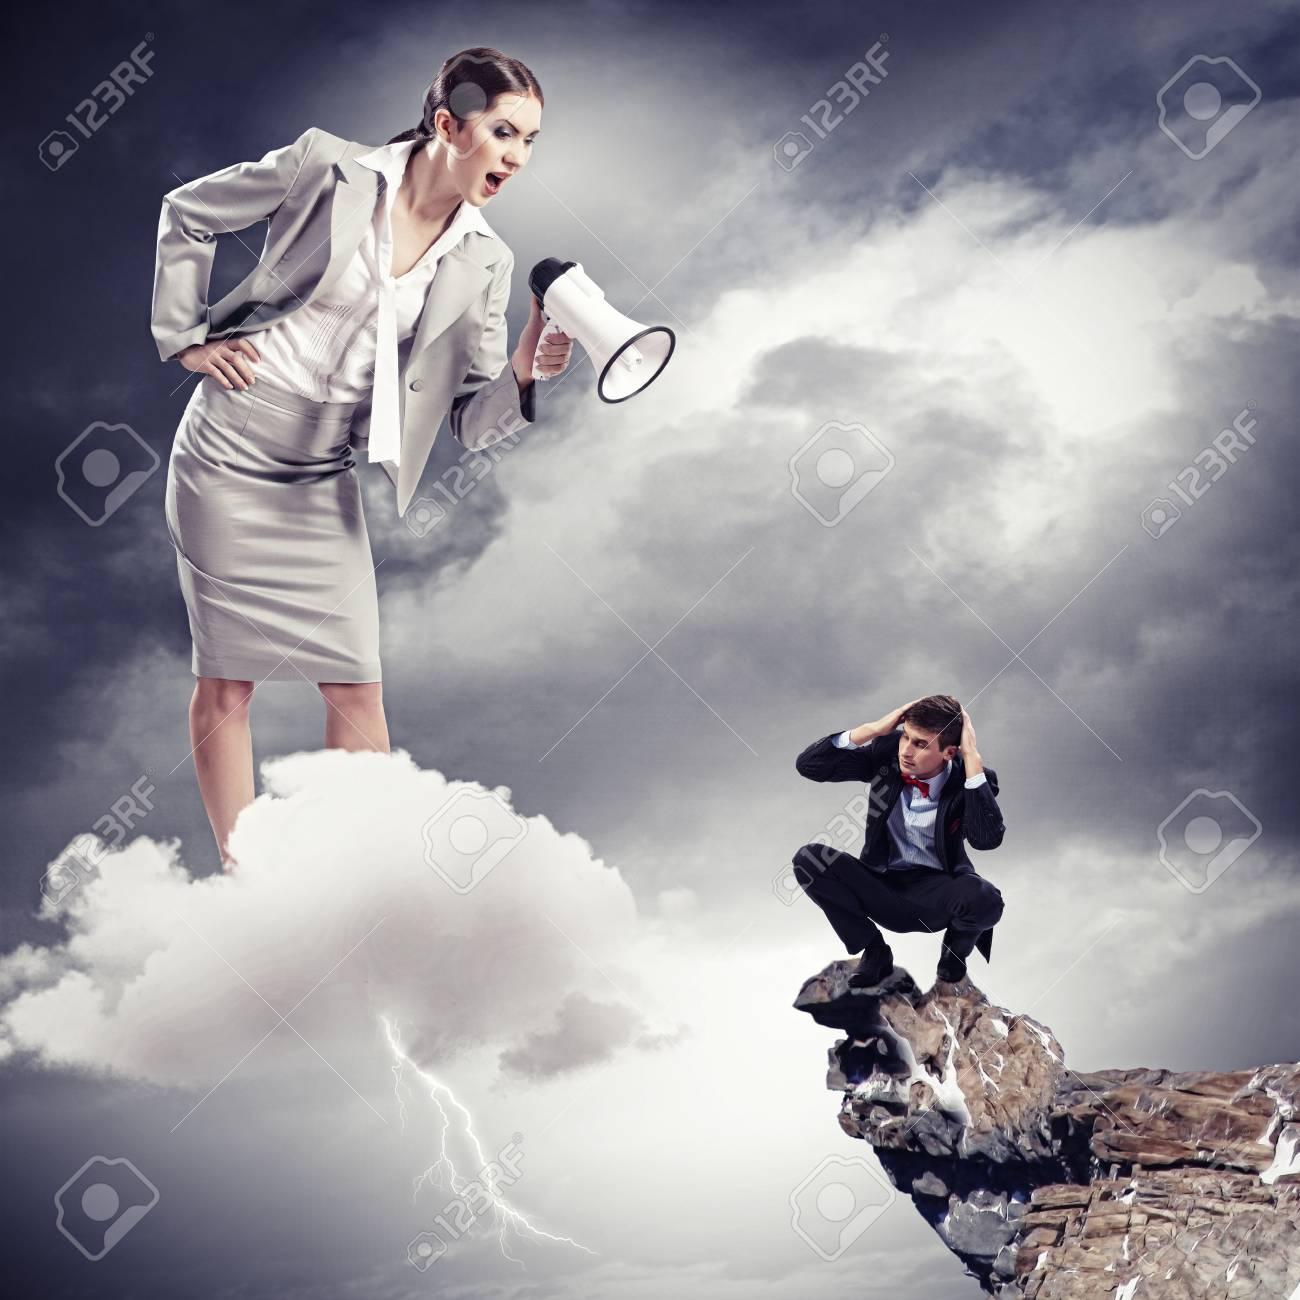 Angry businesswoman with megaphone shouting at colleague Stock Photo - 20327506